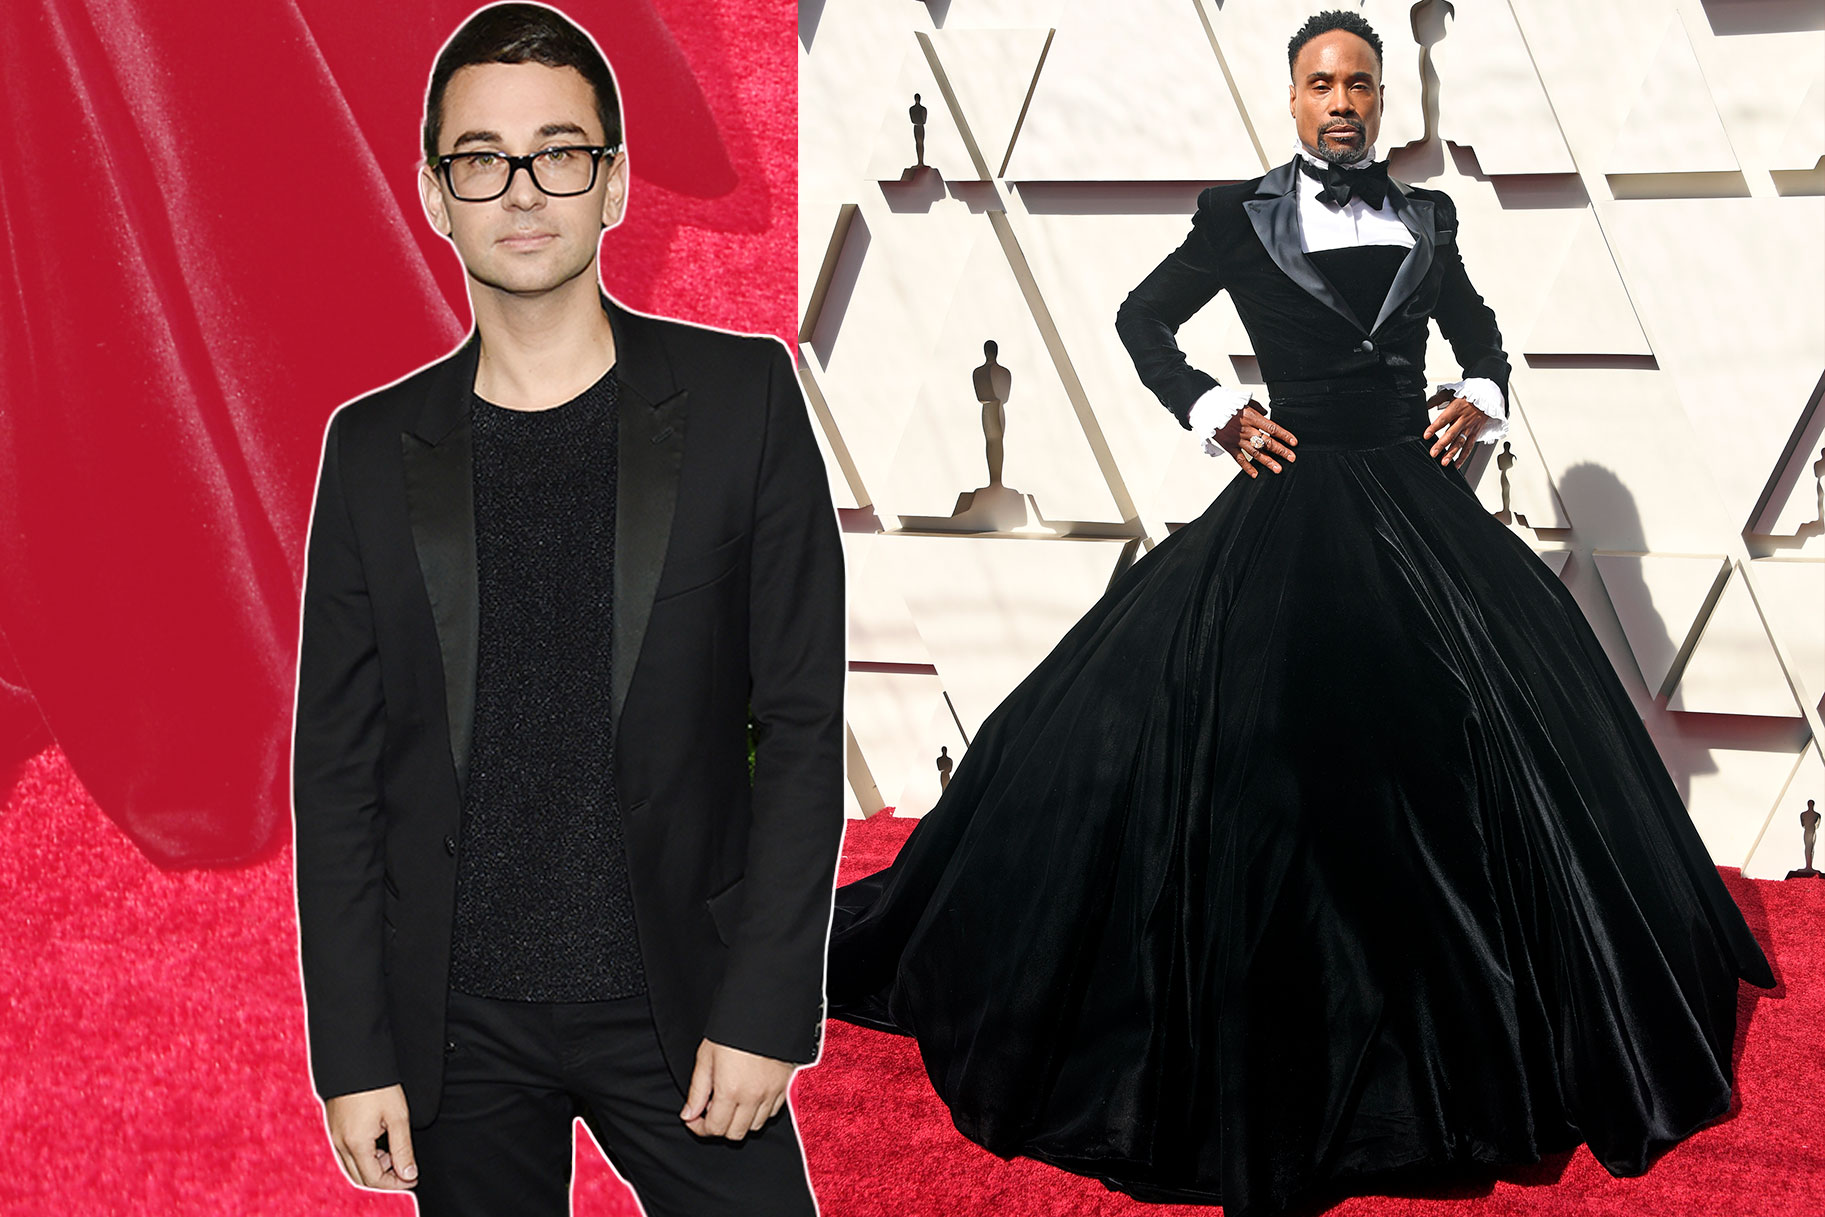 Christian Siriano (left) and Billy Porter (right) wearing a design by Siriano- via  Bravo